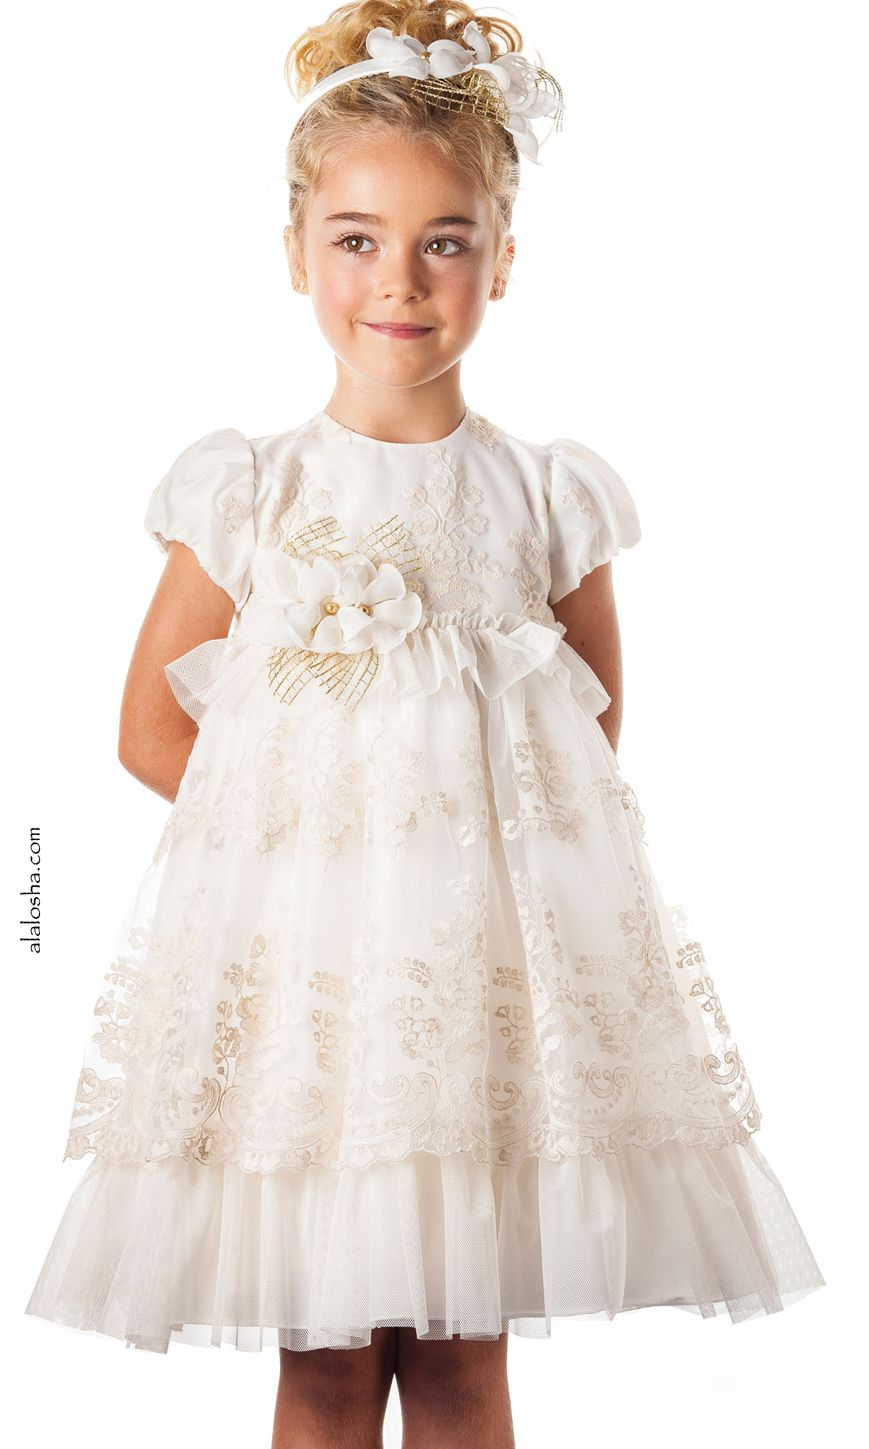 Toddler boy dress clothes for wedding  Introducing new standout brand specialized in HAUTE COUTURE GRACI